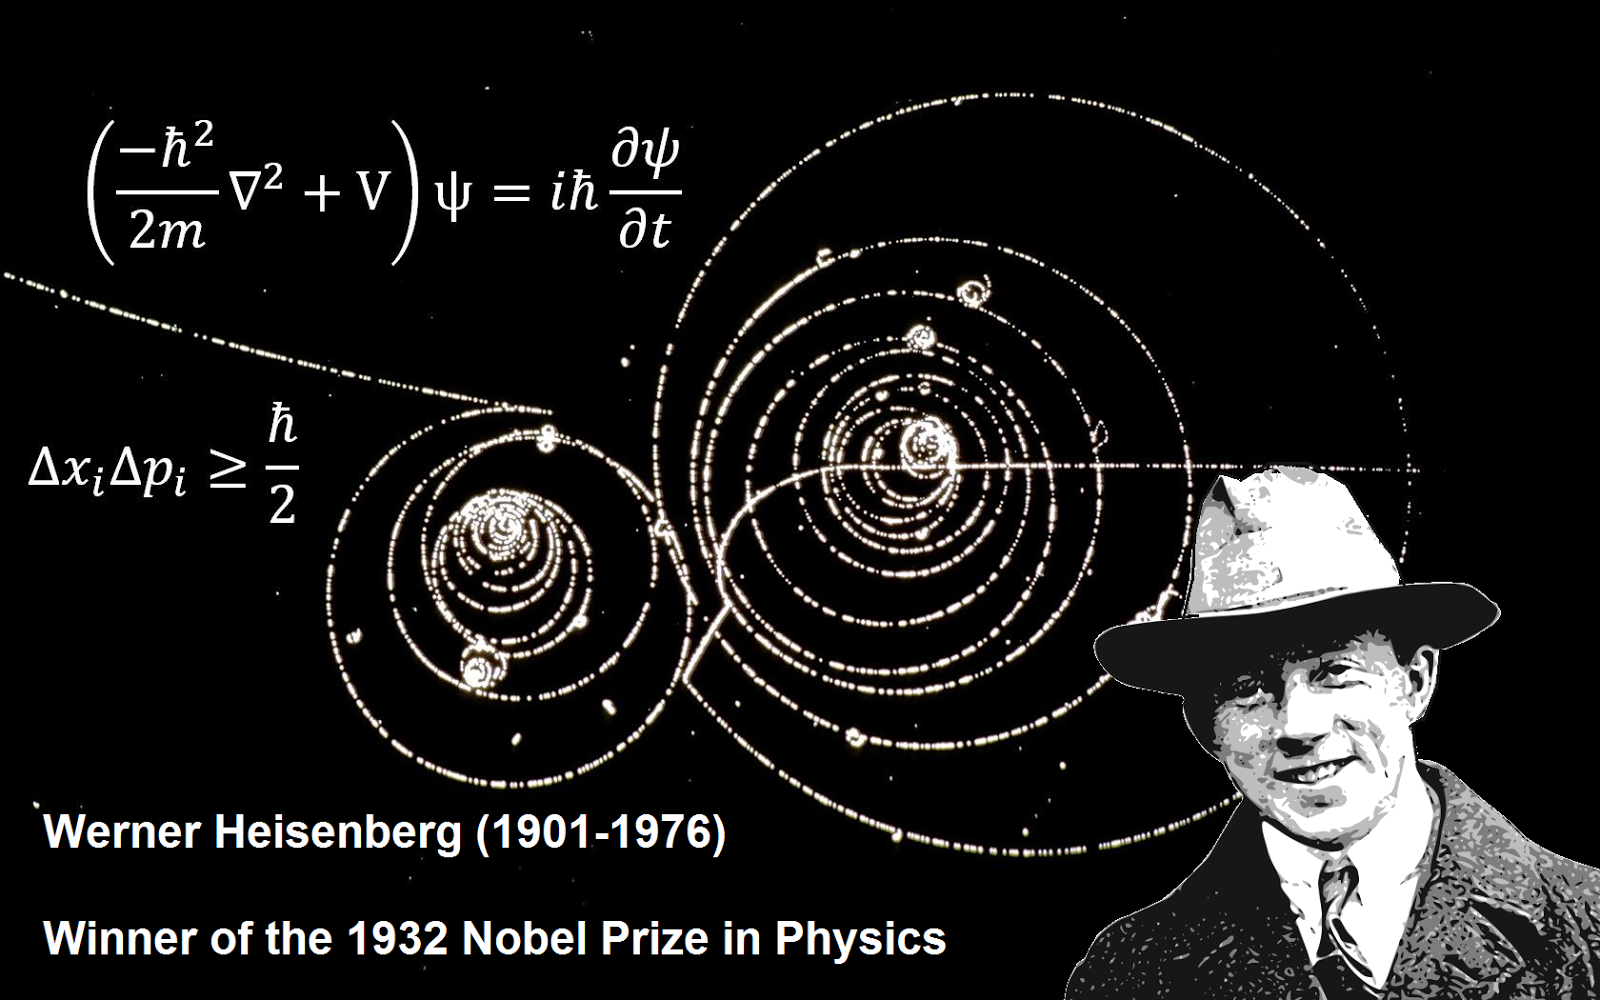 MuonRay: Uncertainty Man - Werner Heisenberg Werner Heisenberg Atomic Model